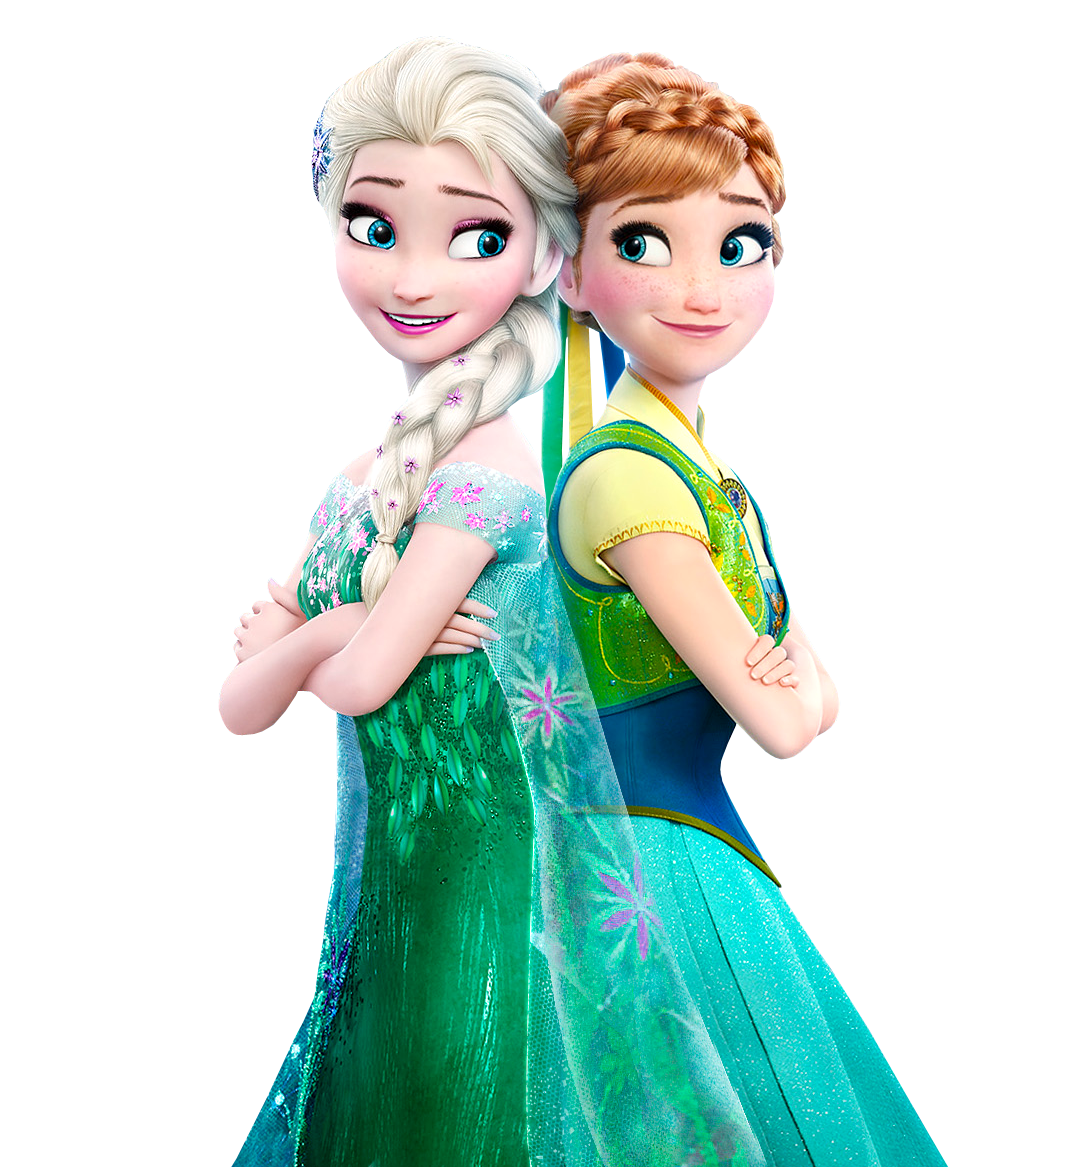 . PlusPng.com Elsa and Anna Frozen Fever - Vector by Simmeh - Frozen HD PNG